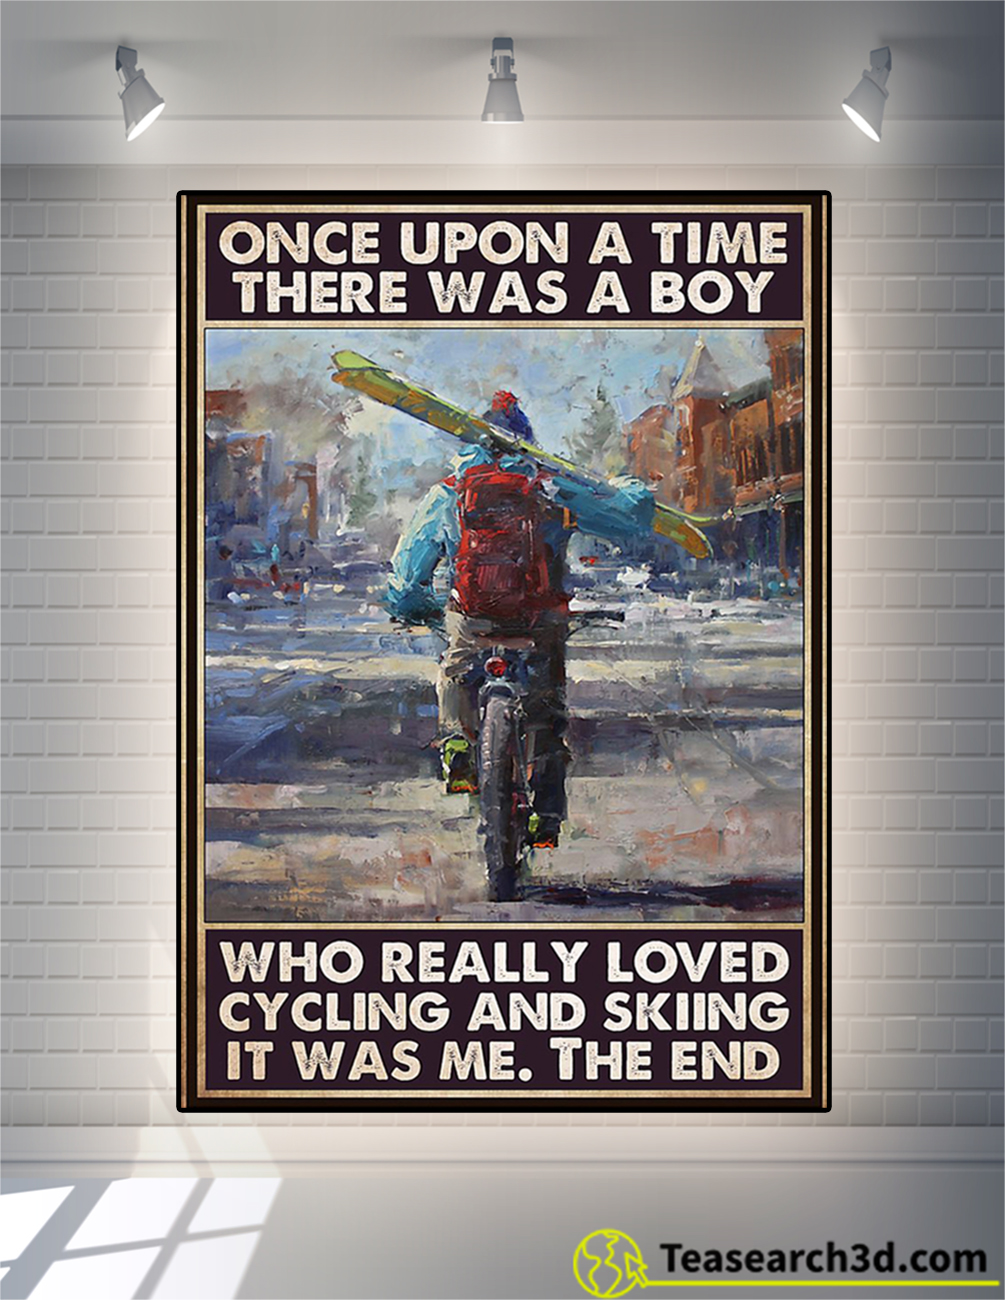 Once upon a time there was a boy who really loved cycling and skiing poster